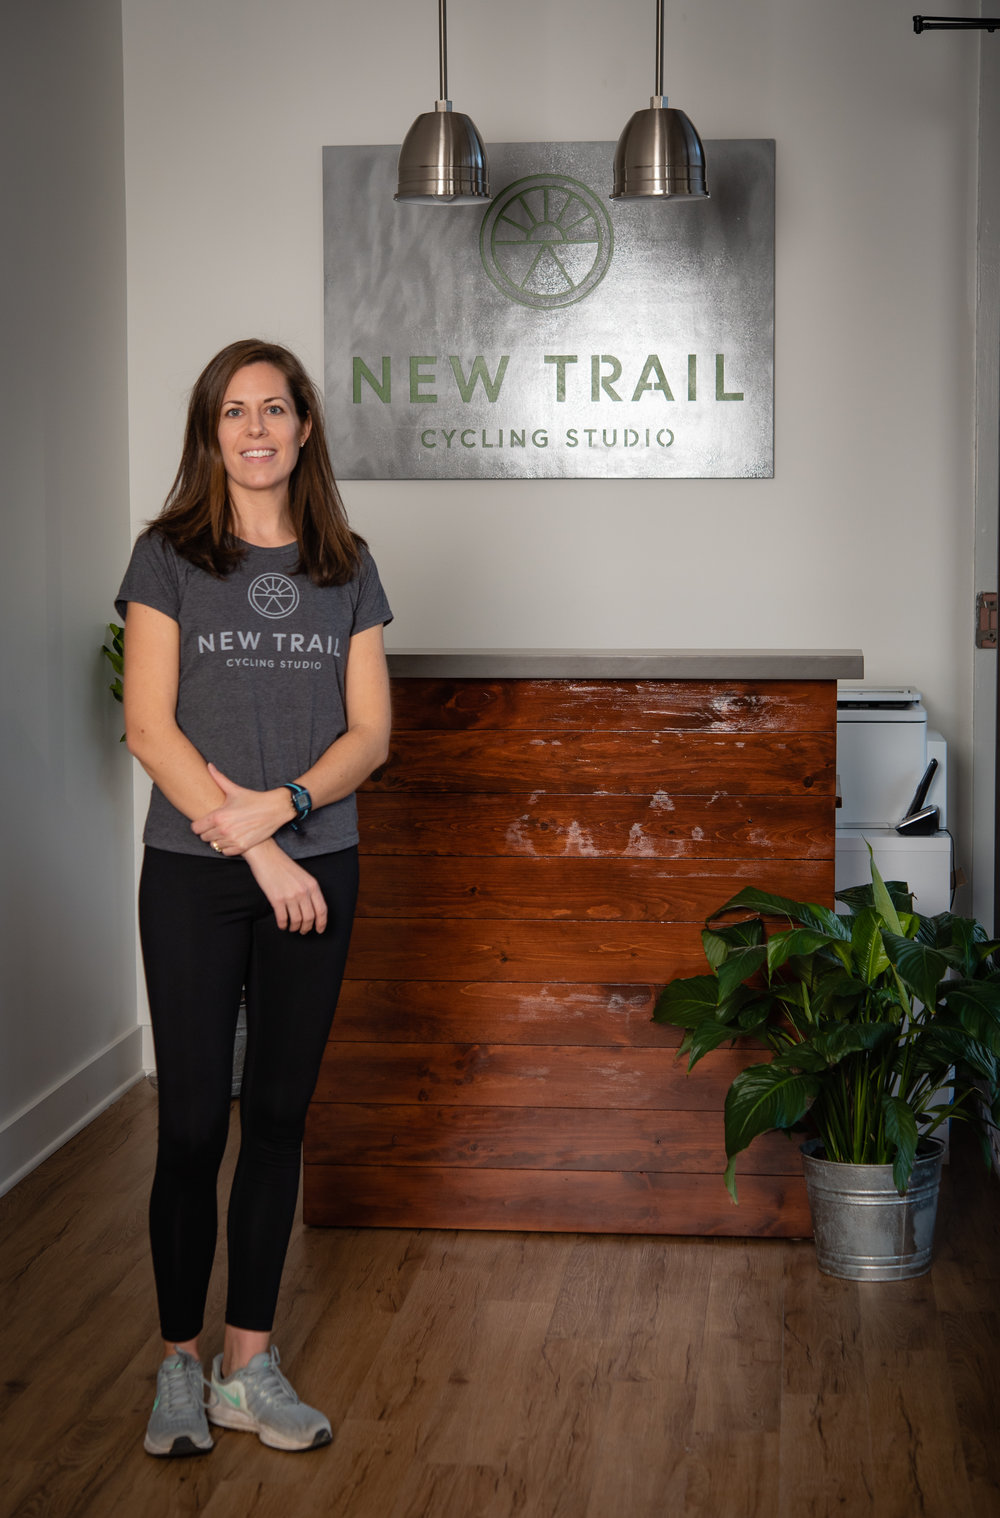 About the Founder - Liz Kamp - I've been teaching, training and/or managing fitness facilities and programs since 2003. Through the years, I've successfully coached many types of clients: those dealing with injuries, new moms trying get back to a fitness routine, people struggling to motivate to exercise, even athletes trying to take it up a notch. I have dealt with each of these issues myself, and cycling has always been an outlet where I can focus on myself, feeling my best, and achieving my personal goals. At New Trail, people come to have fun while they get in shape, work toward fitness goals, and feel a sense of community – we're all on this trail together.As a Reston resident for almost a decade, I'm thrilled to be a member of the growing group of diverse and talented merchants at Lake Anne.Welcome to New Trail, I hope you find a home riding with us.